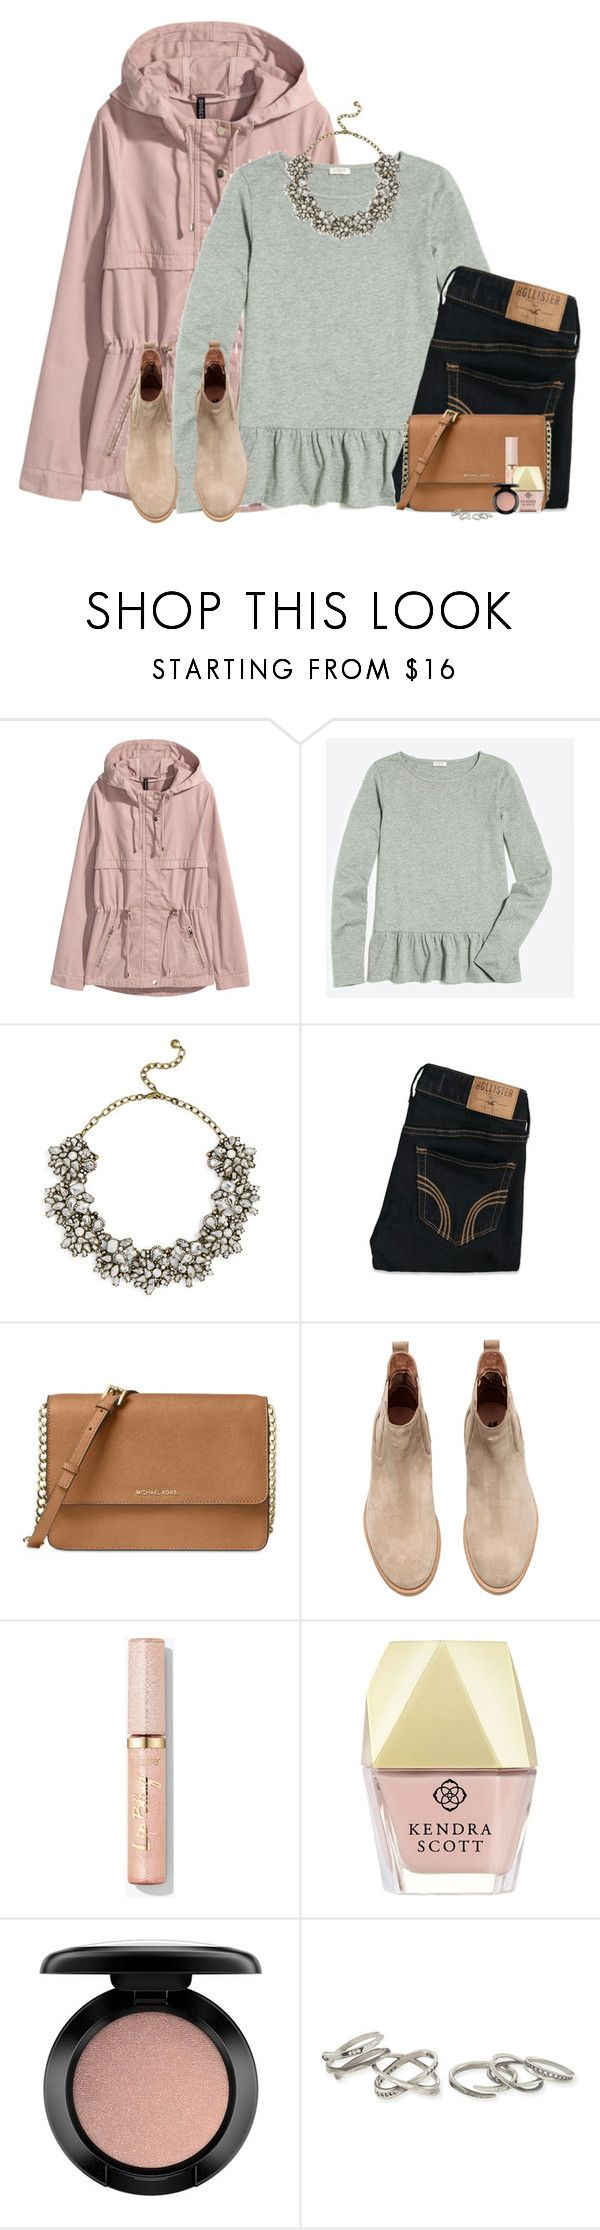 """""""Pink parka, gray peplum & statement necklace"""" by steffiestaffie ❤ liked on Polyvore featuring J.Crew, BaubleBar, Hollister Co., Michael Kors, Kendra Scott and MAC Cosmetics"""